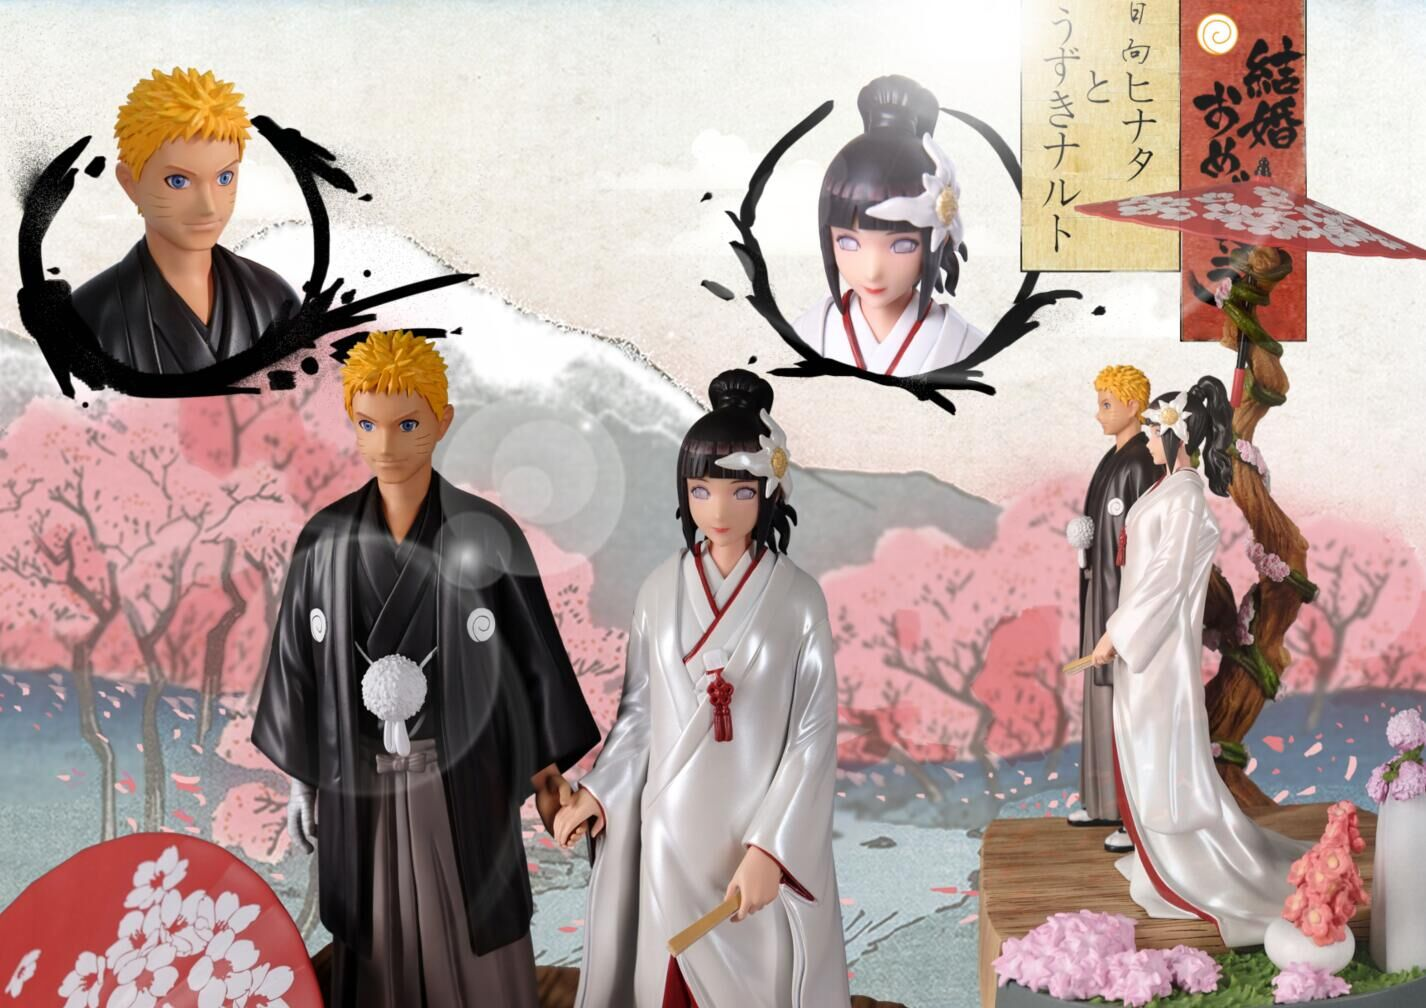 Naruto Hinata Wedding.Details About Simple Studio Naruto Uzumaki Hyuga Hinata Wedding Marry Collector Resin Statue